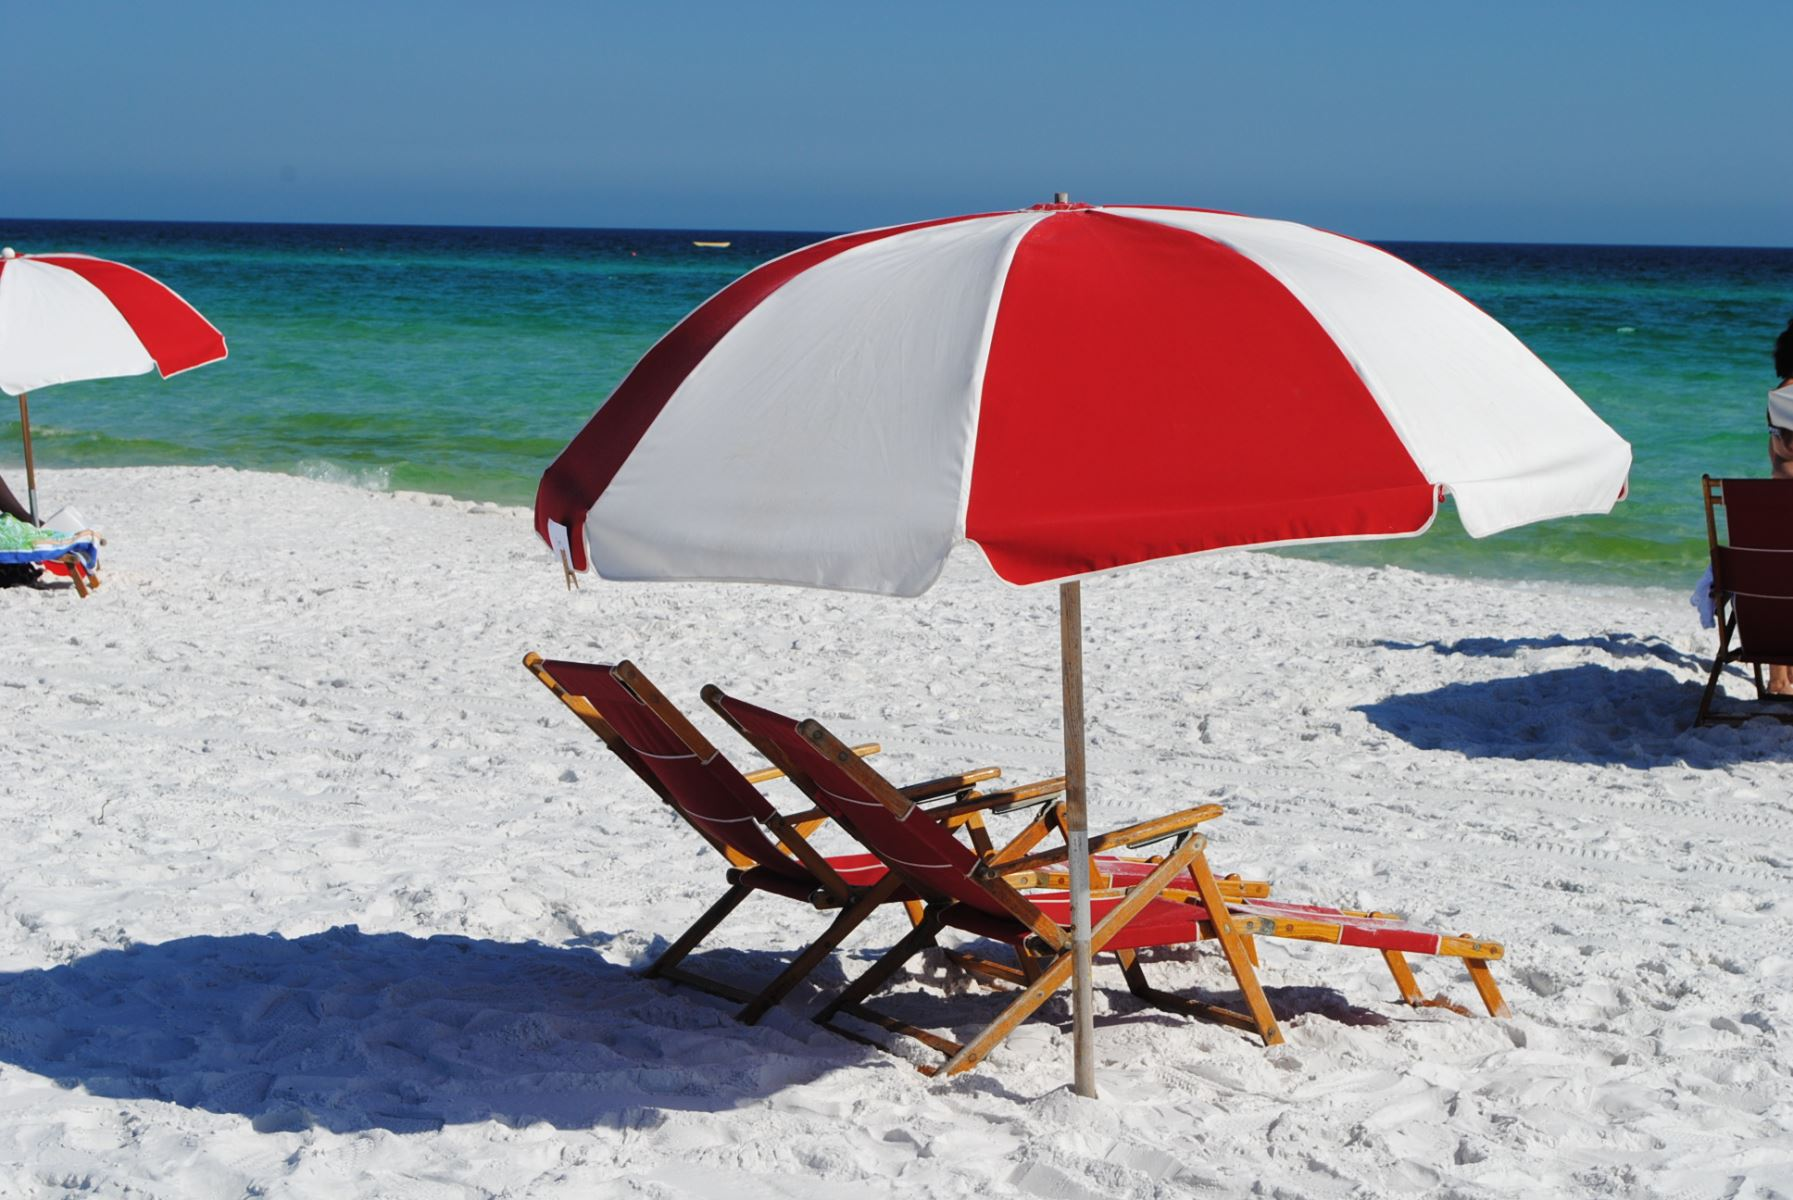 Enjoy Free Beach Service While at Ciboney. Umbrella and 2 Chairs Set-up Waiting forYou